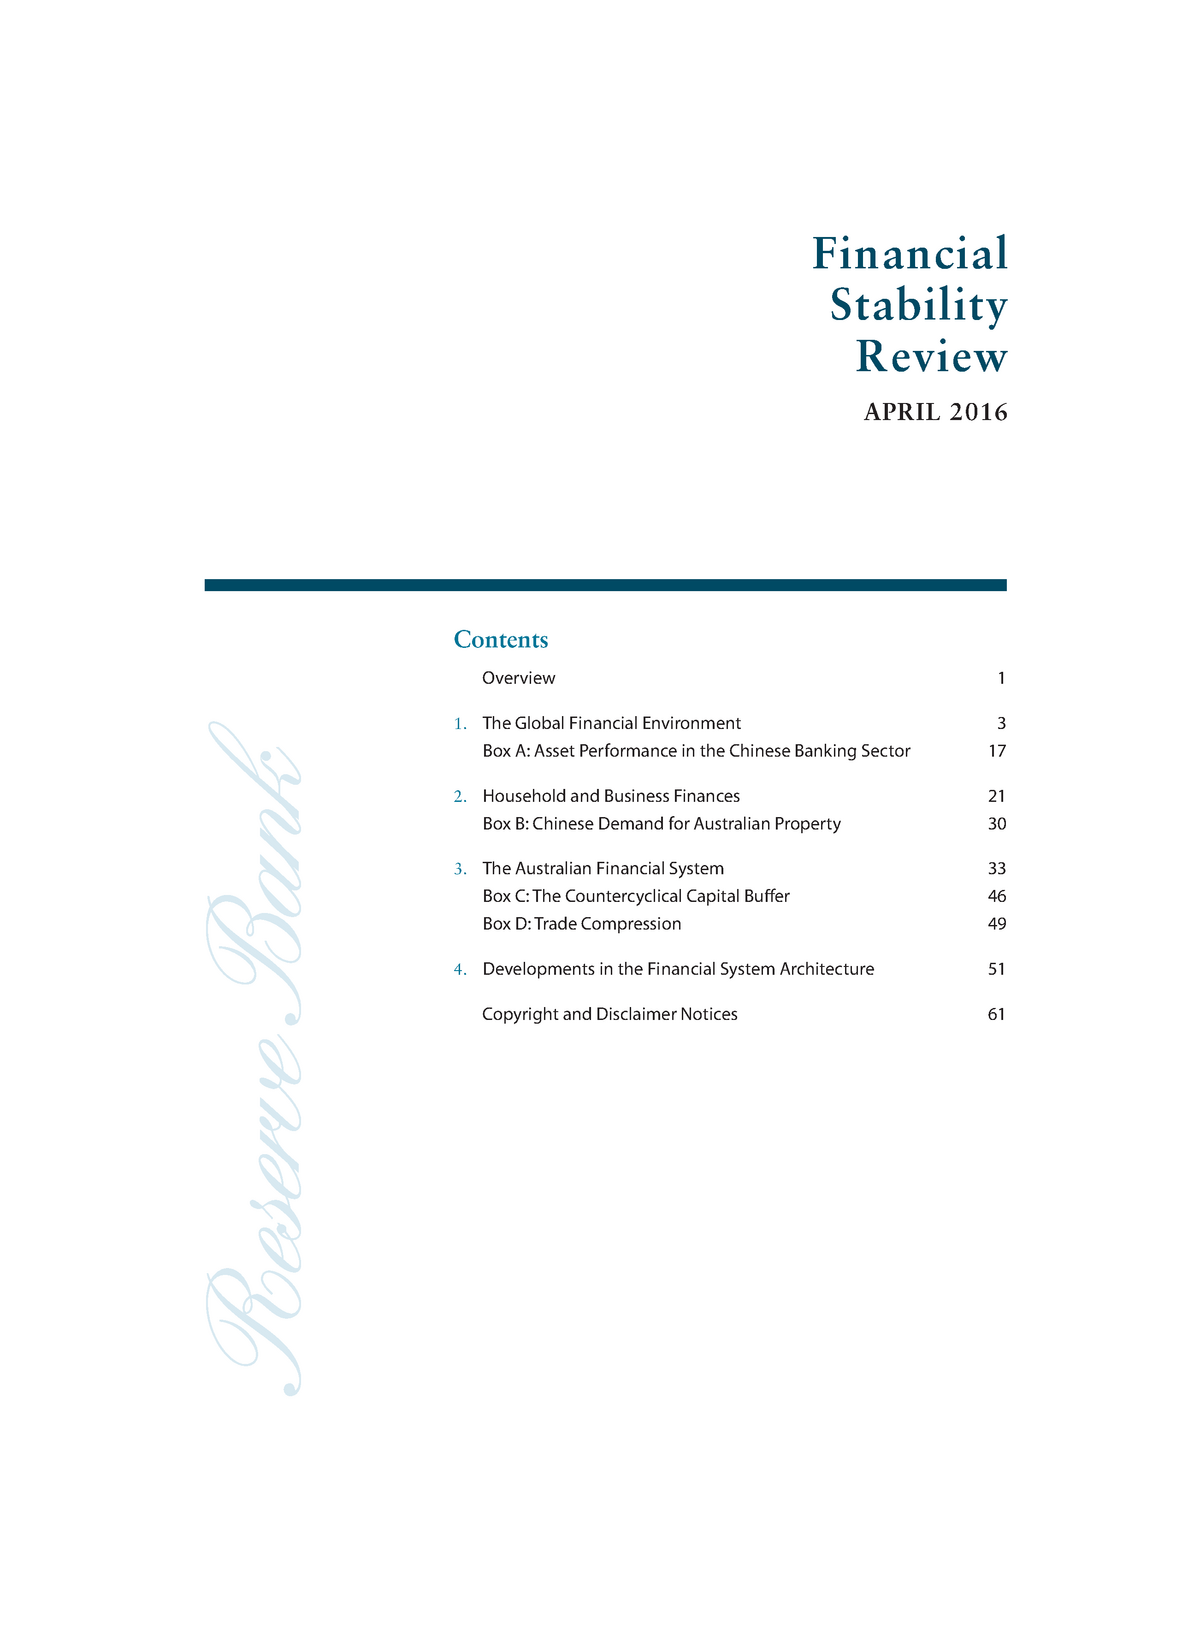 Financial stability review 2016-04 - BFF3651: Treasury Management